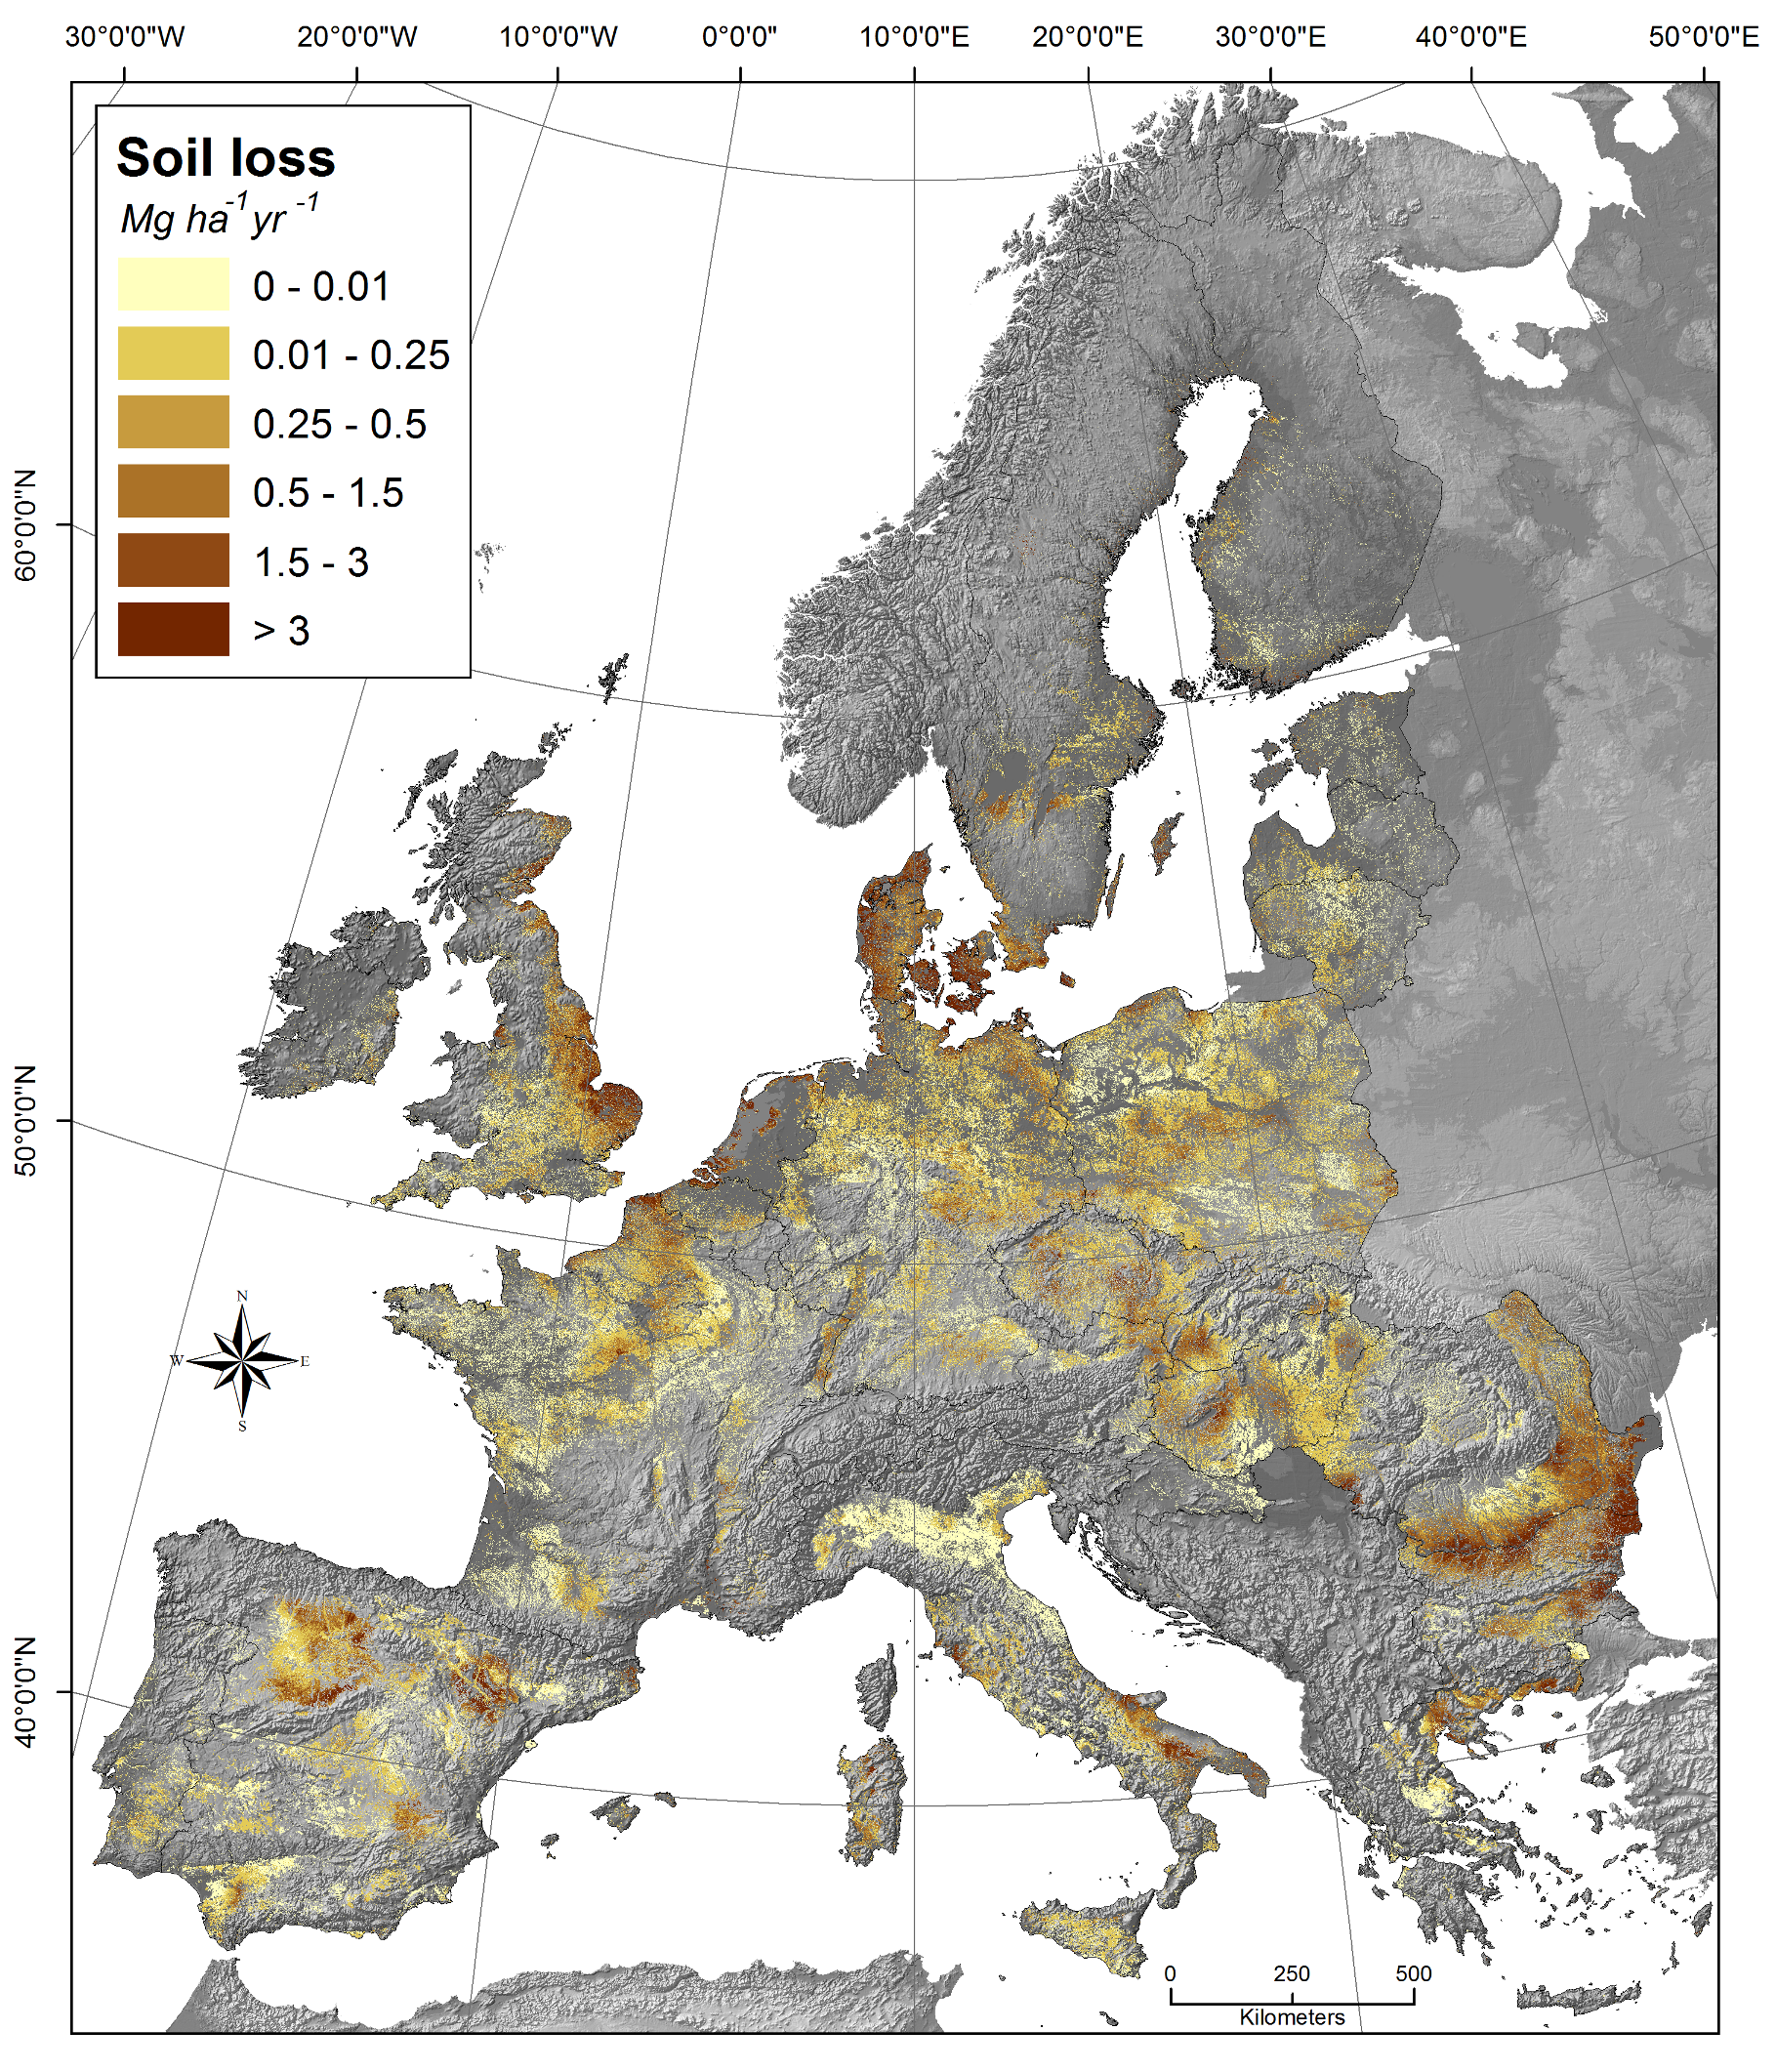 Soil erosion by wind esdac european commission for The soil the soil